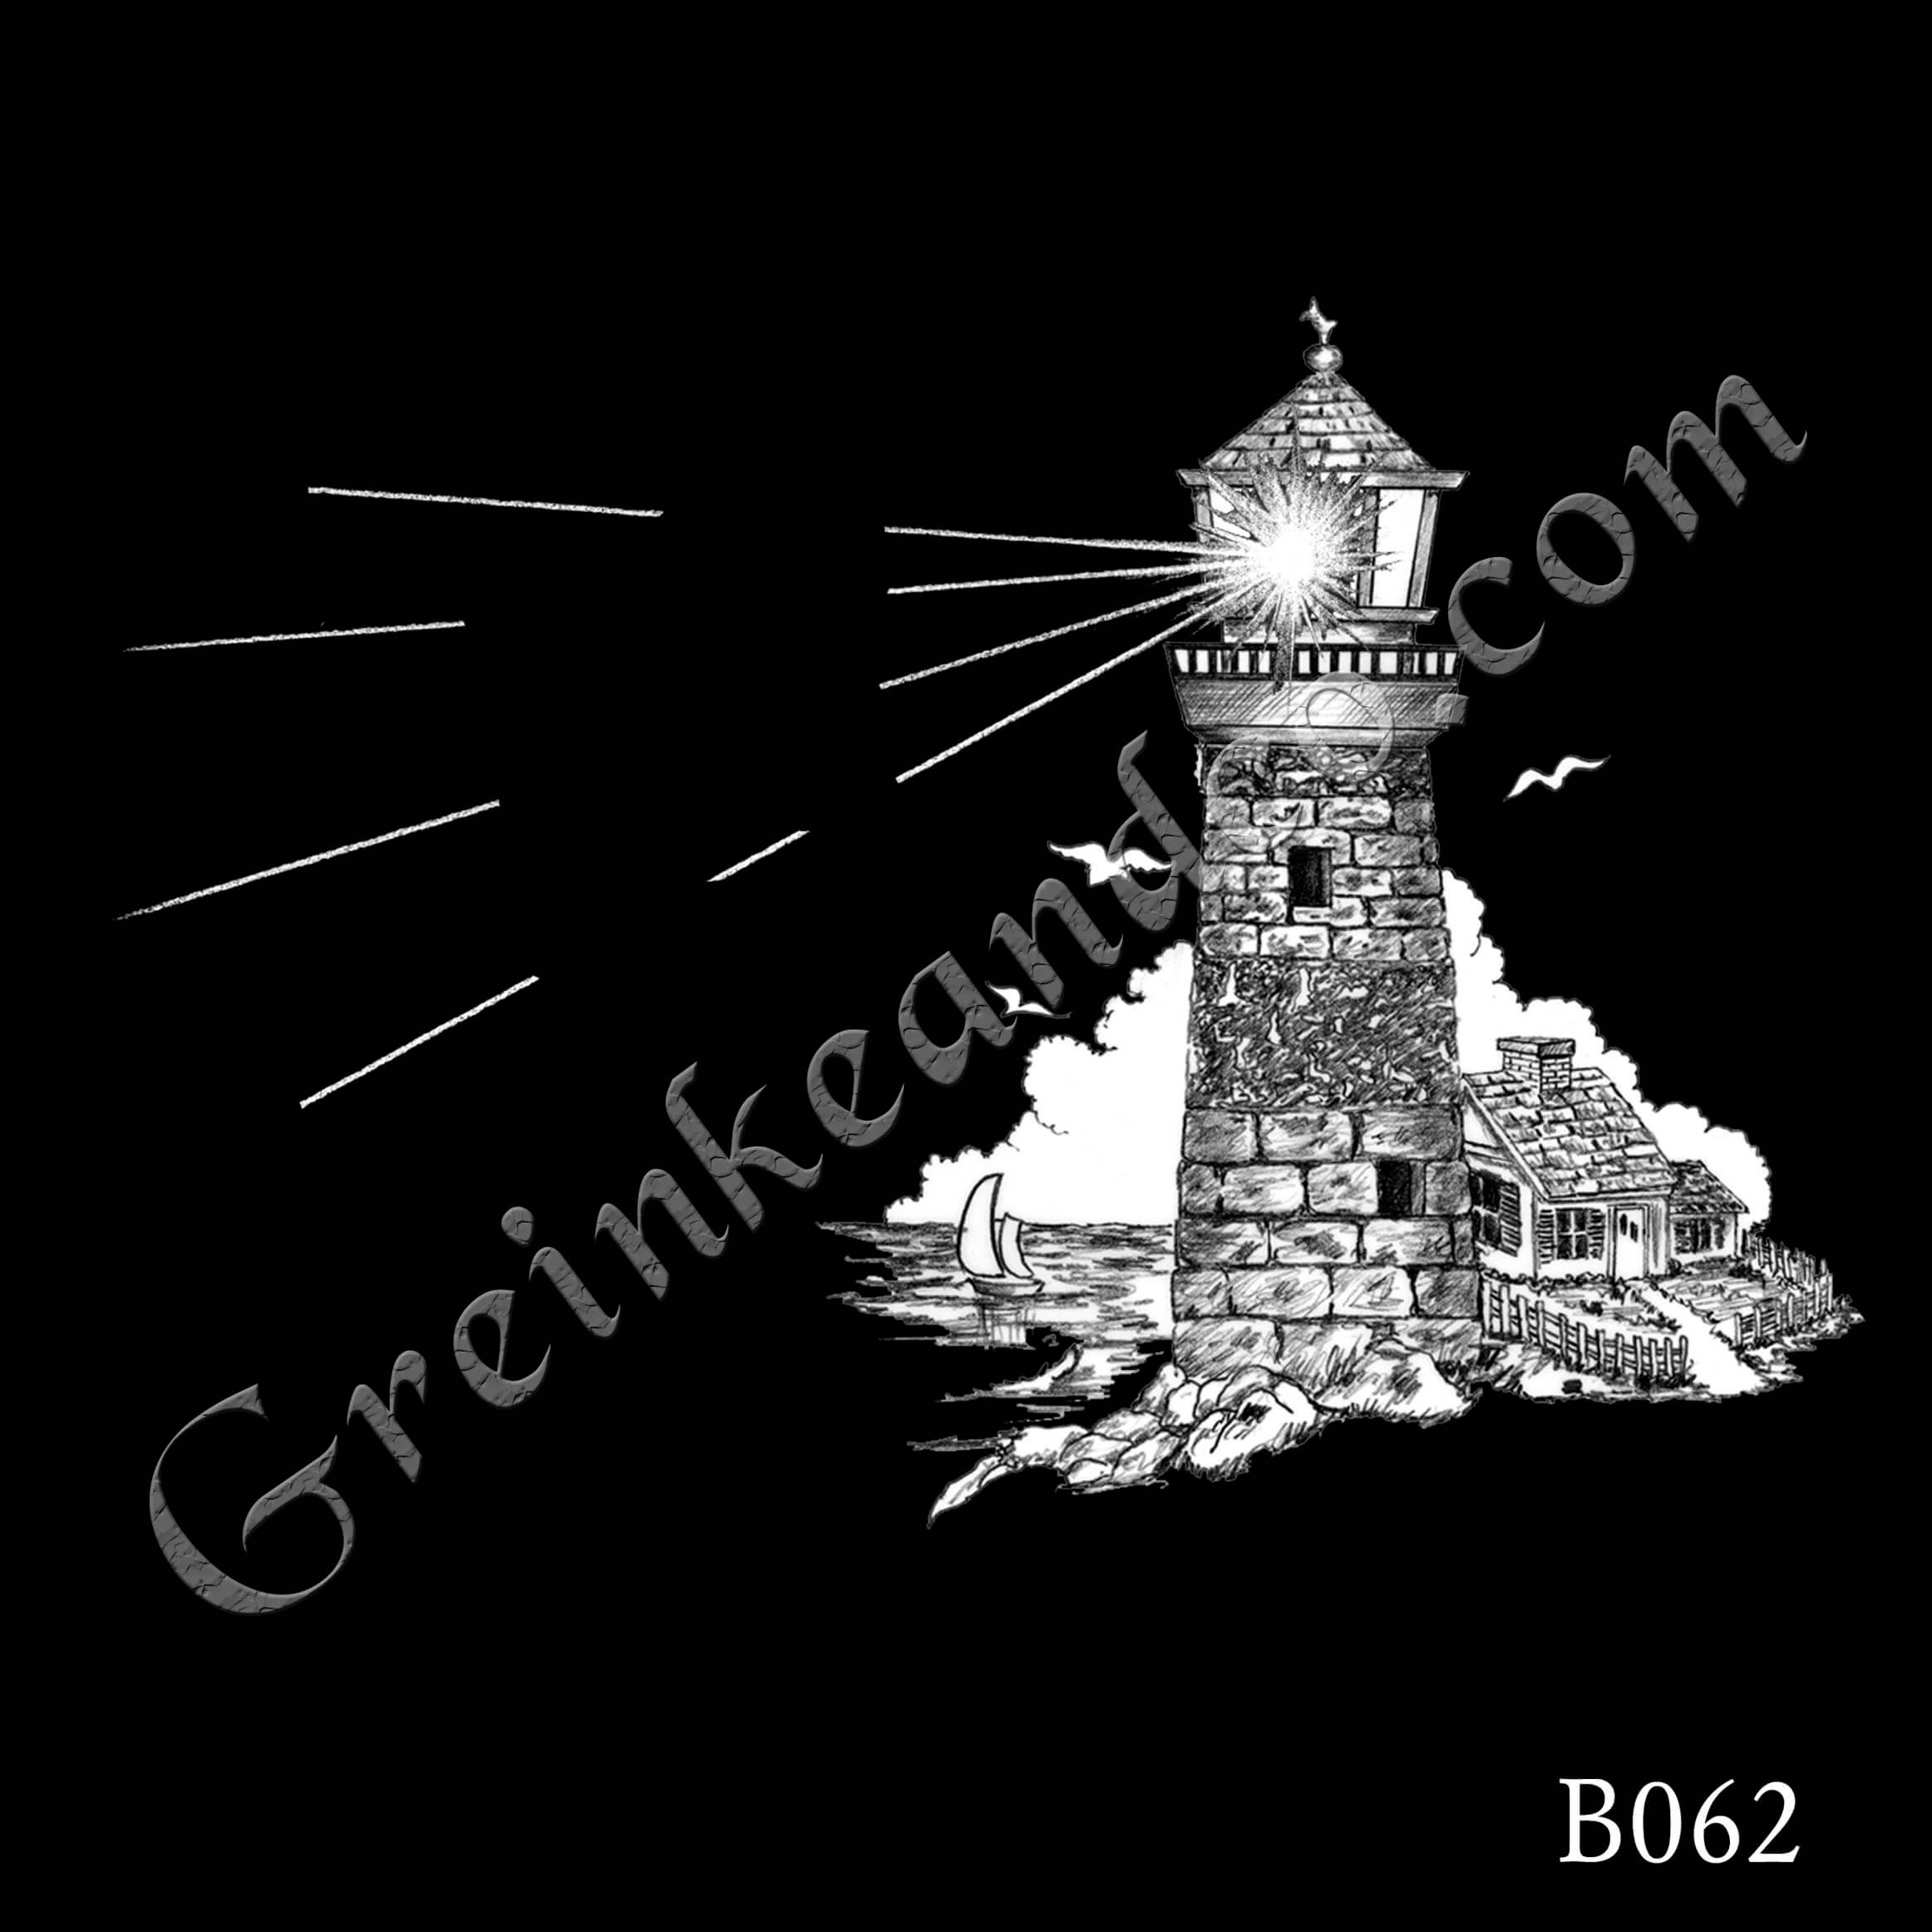 B062 - Lighthouse Scene